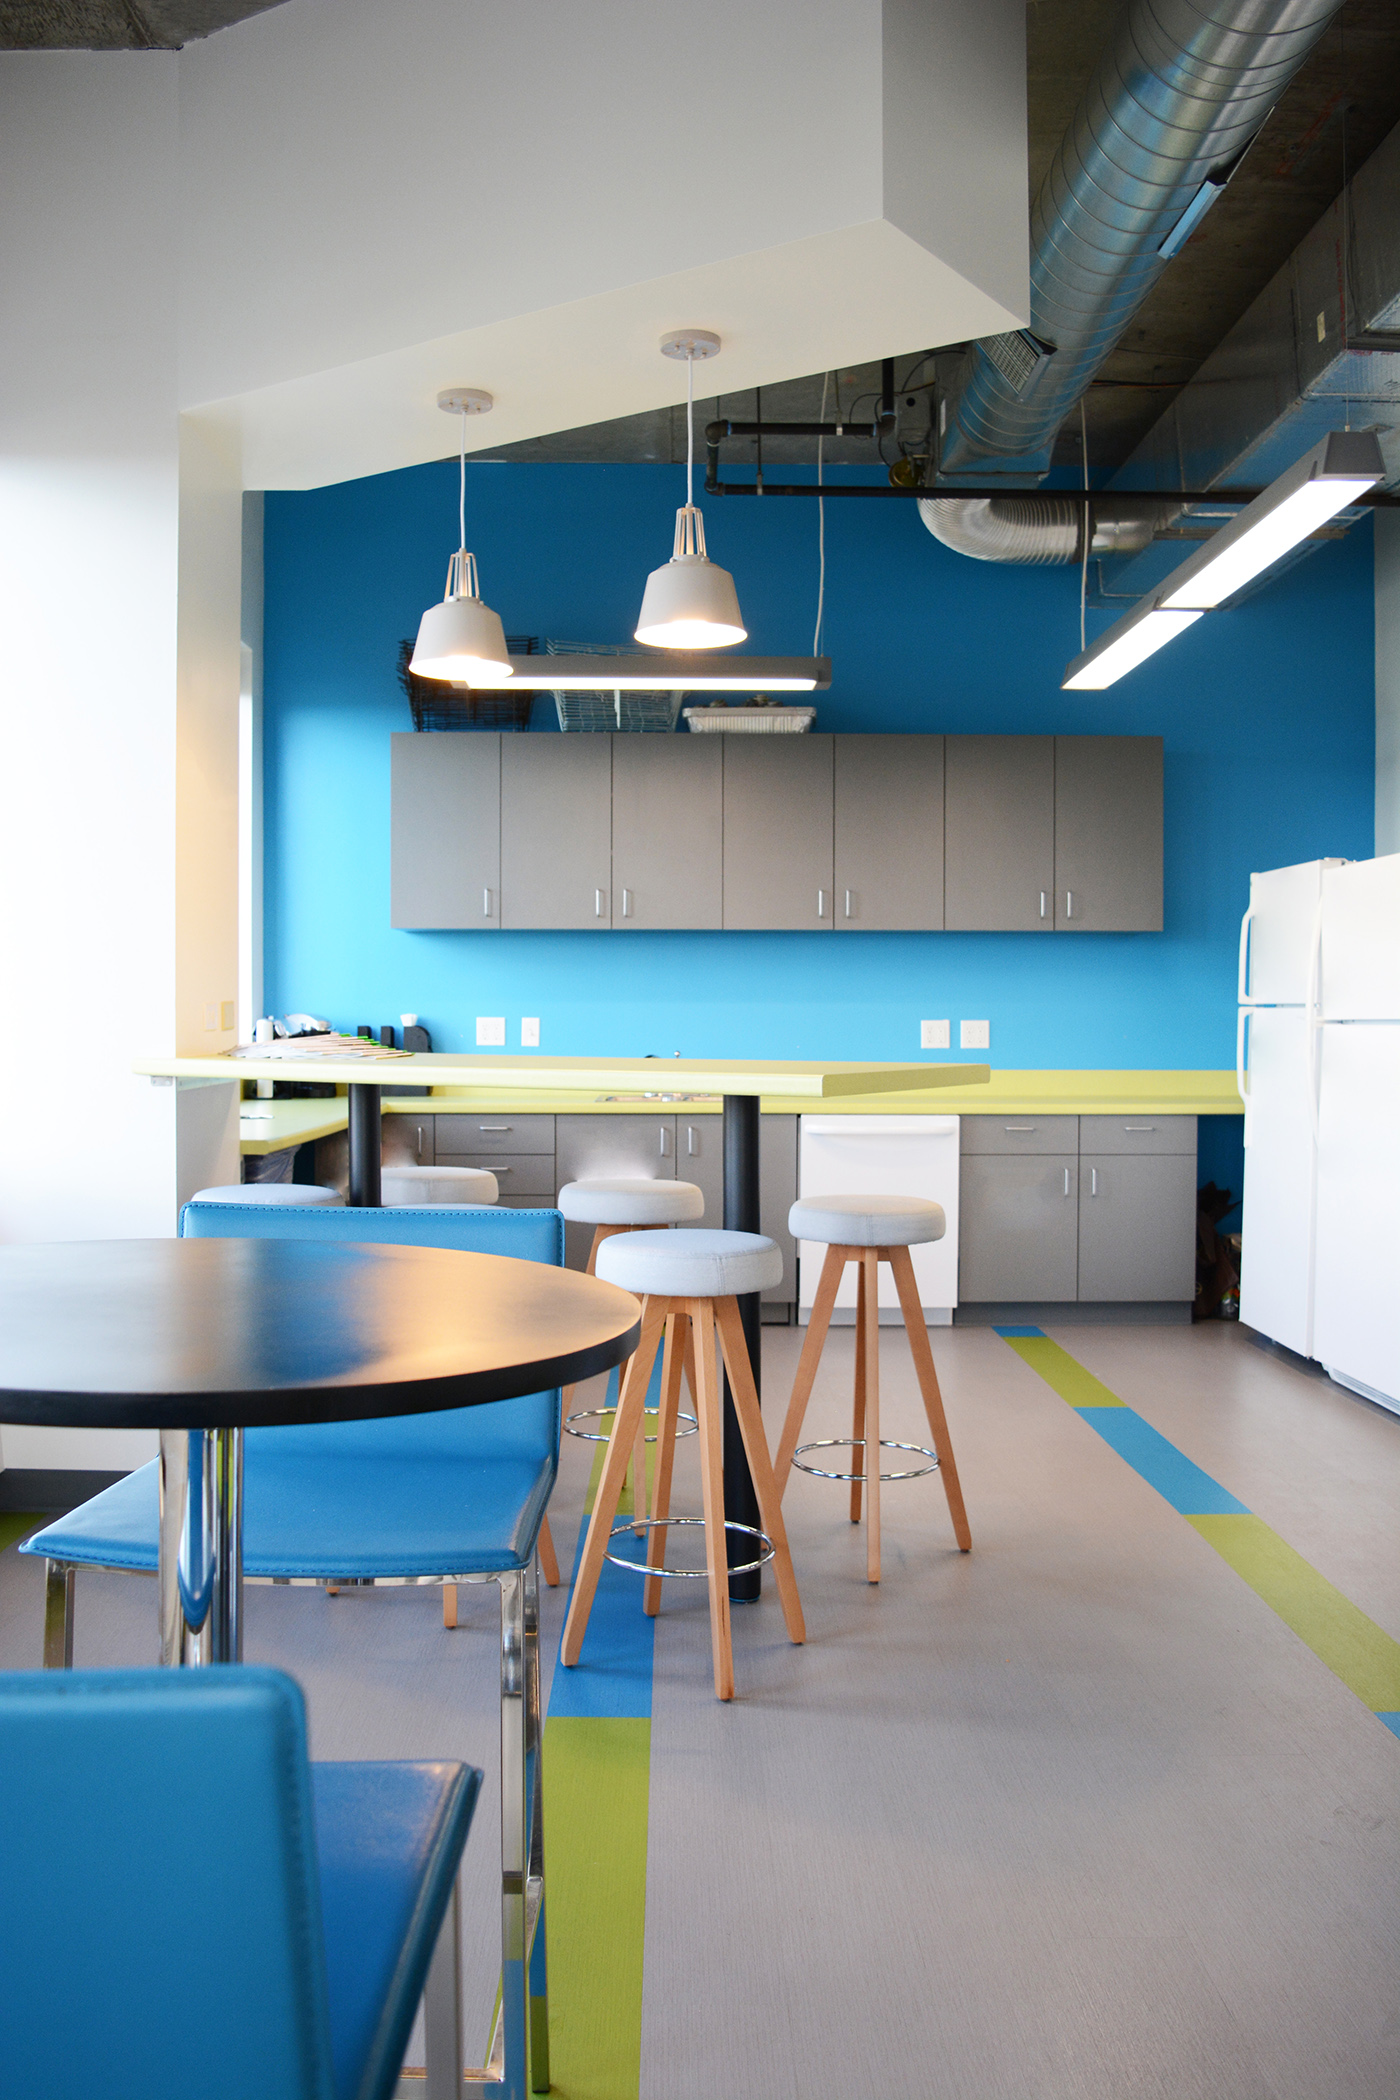 In response to Teach for America's lack of eating area and counter space, Kestrel designed a large L-shaped counter and added a bar height seating area. Colorful stripes of Shaw Pigment LVT were used to add interest to the floor and tie in the colors of the counter and accent paint. The seating area features telescoping doors that are painted with white board paint. These can be closed when a more private meeting is necessary or opened for a more casual feel.